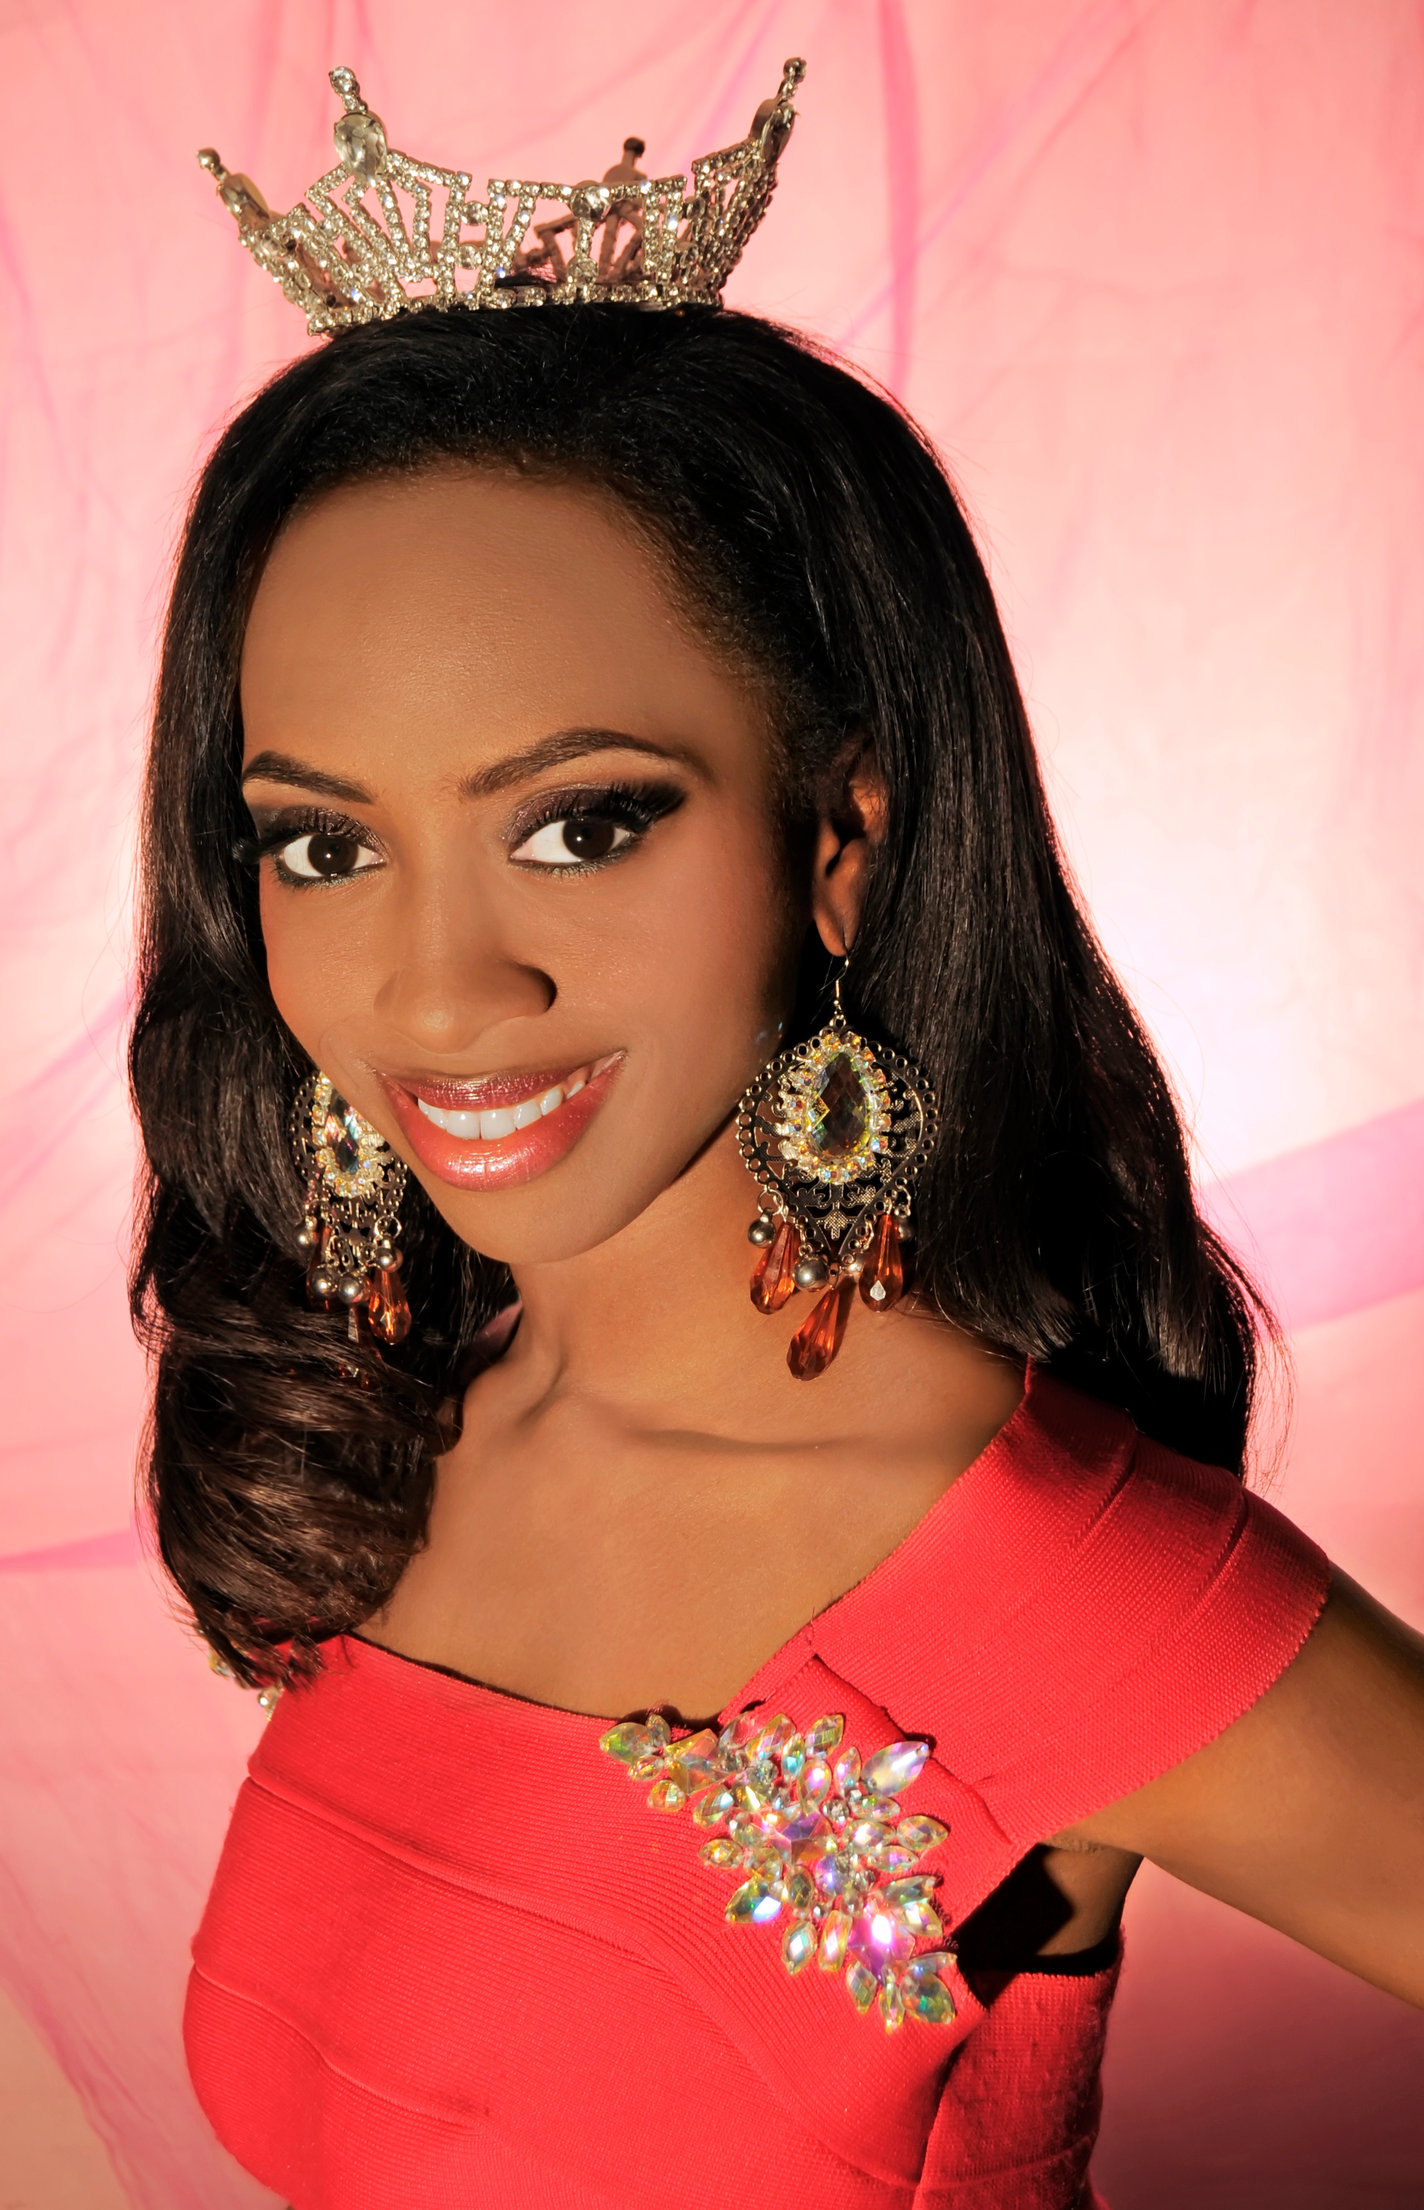 MISS GREATER GREER- LIA HOLMAN, she petite size beauty is as powerhouse of vocal talent.